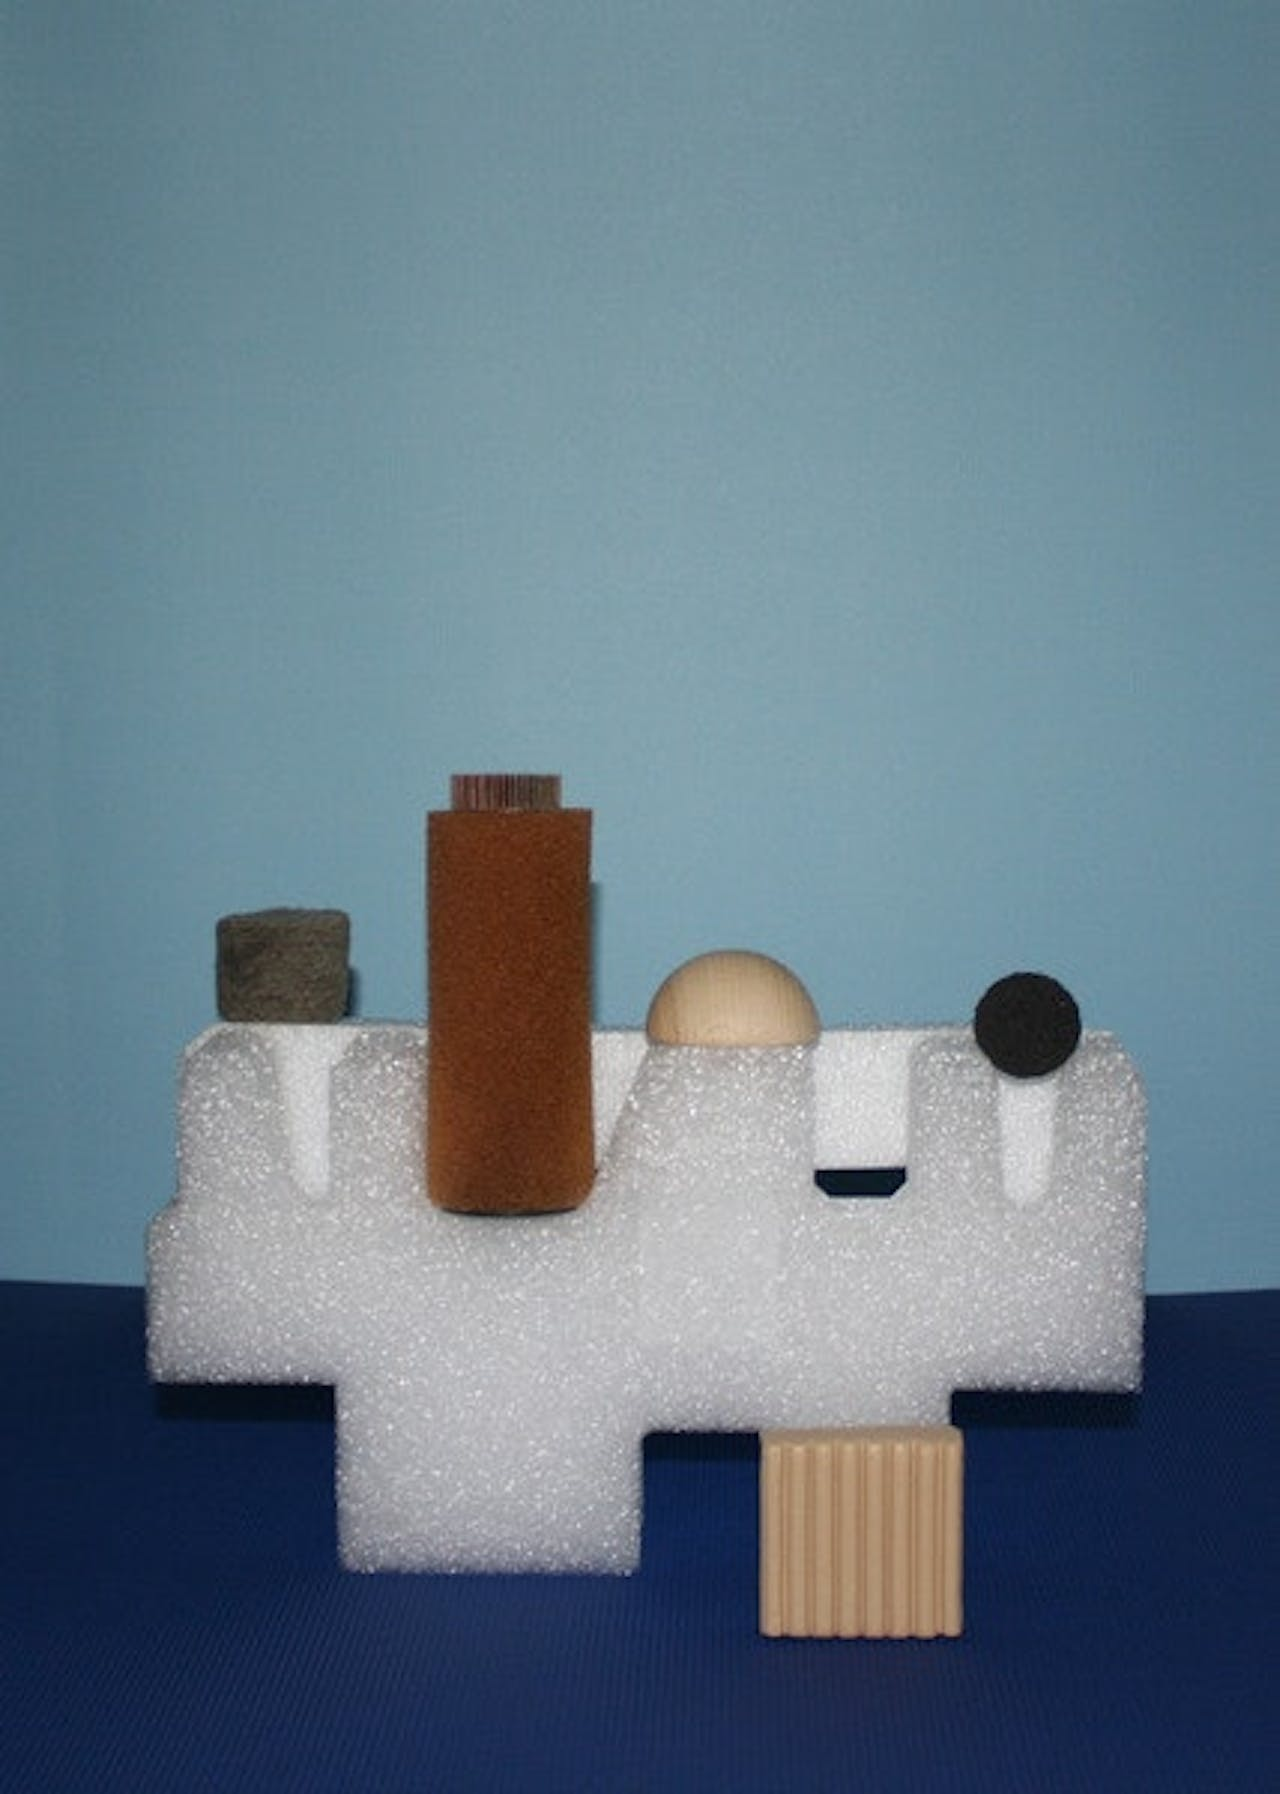 Modulor x ArtConnect Open Call: Finding the value in daily life objects von Damla Ruzgar